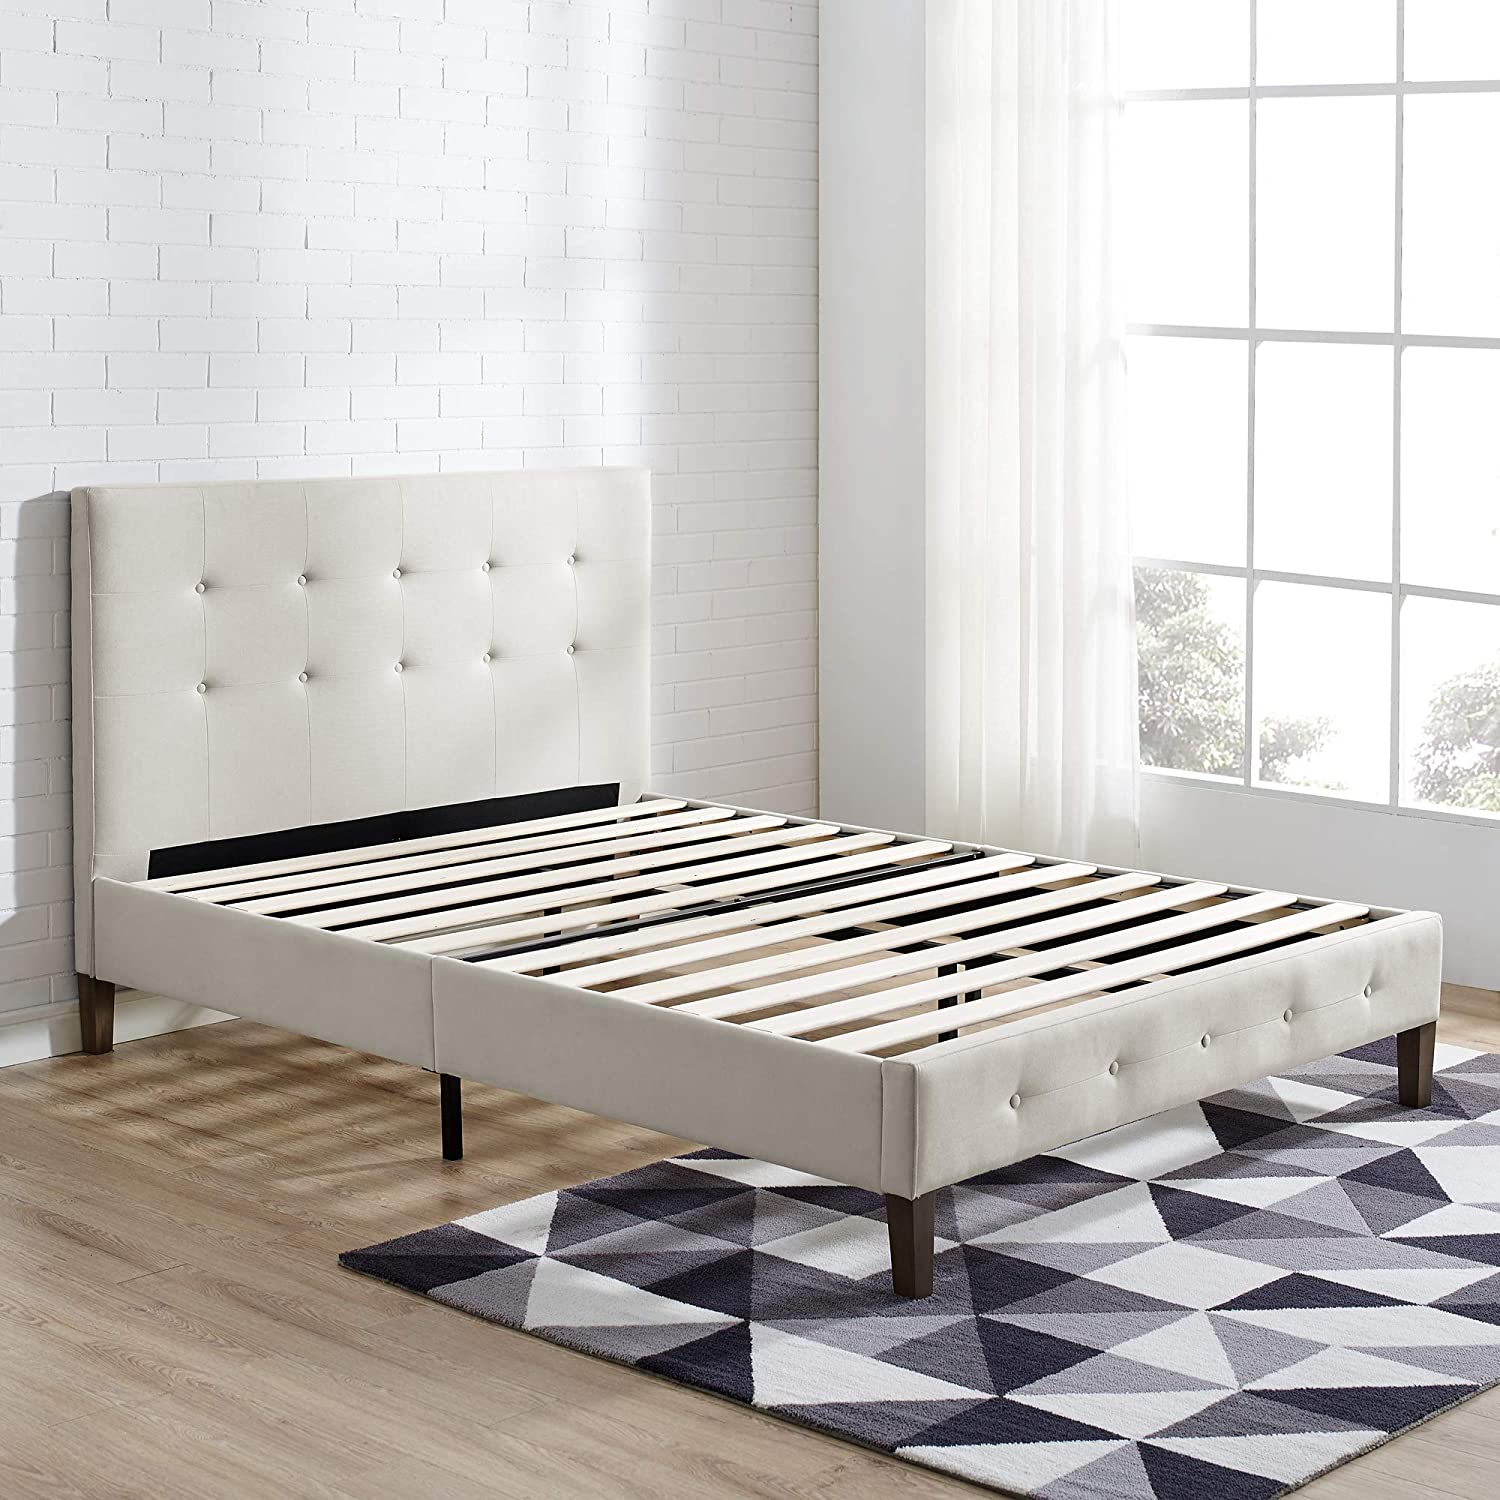 Classic Brands DeCoro Seattle Modern Tufted Upholstered Platform Bed Headboard and Wood Frame with Wood Slat Support, Queen, Peyton Shell